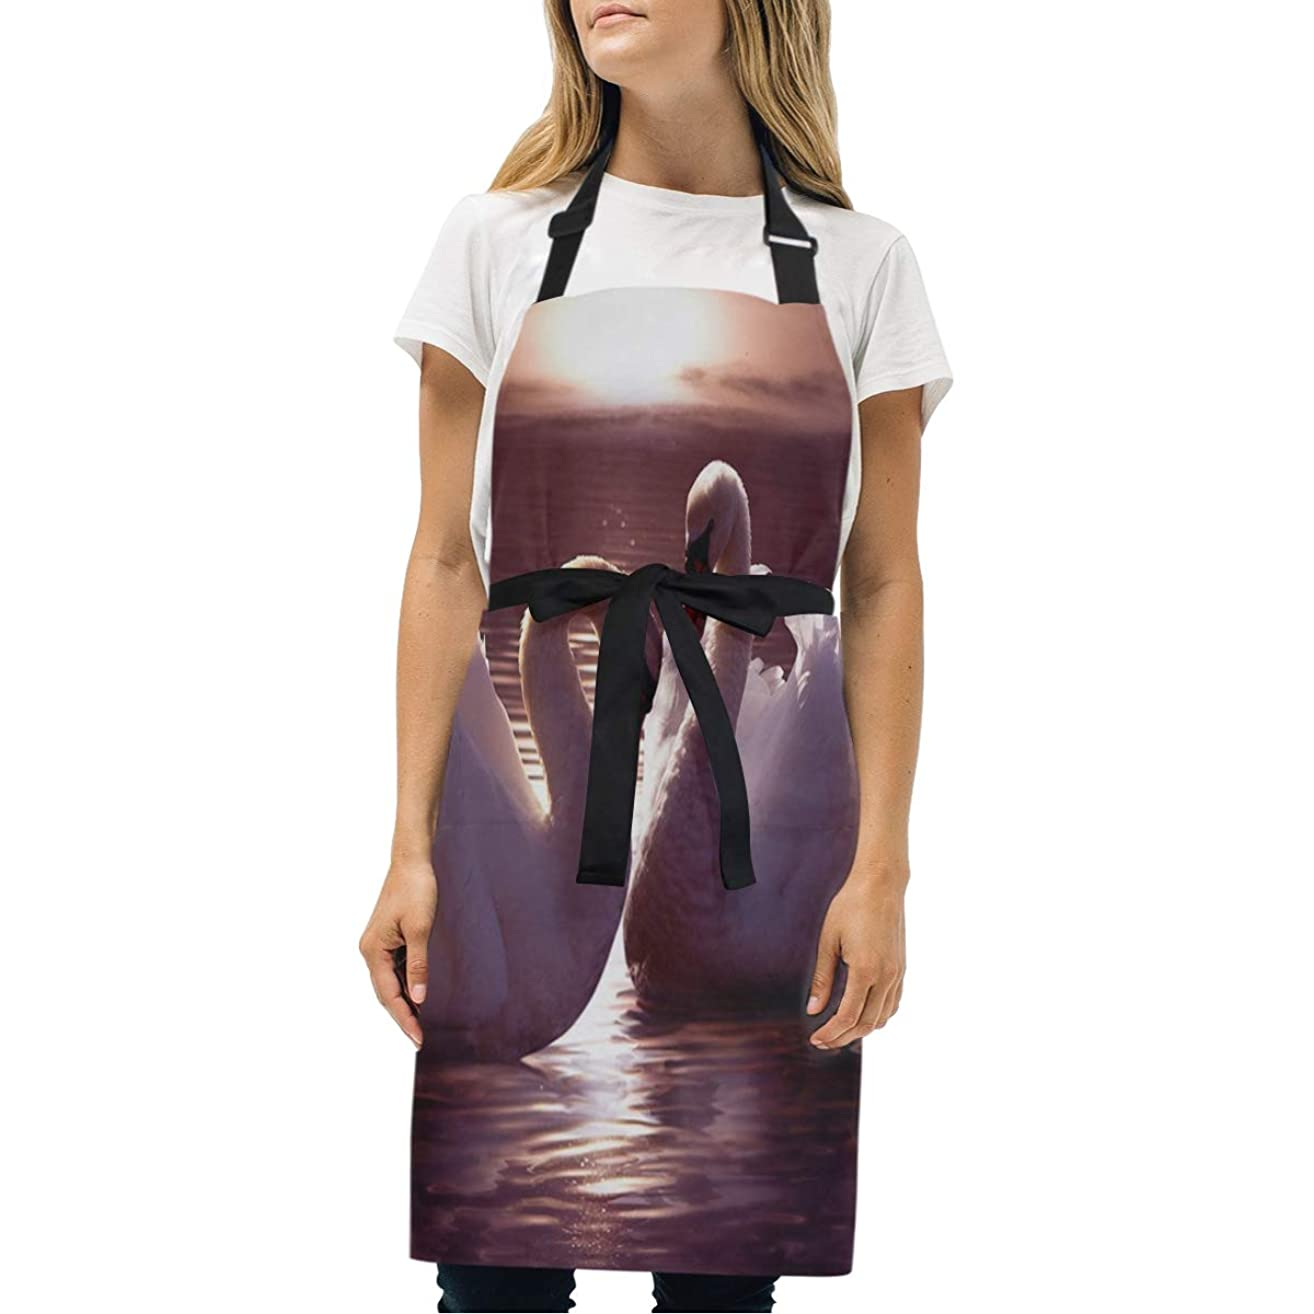 HJudge Womens Aprons White Swan Kitchen Bib Aprons with Pockets Adjustable Buckle on Neck